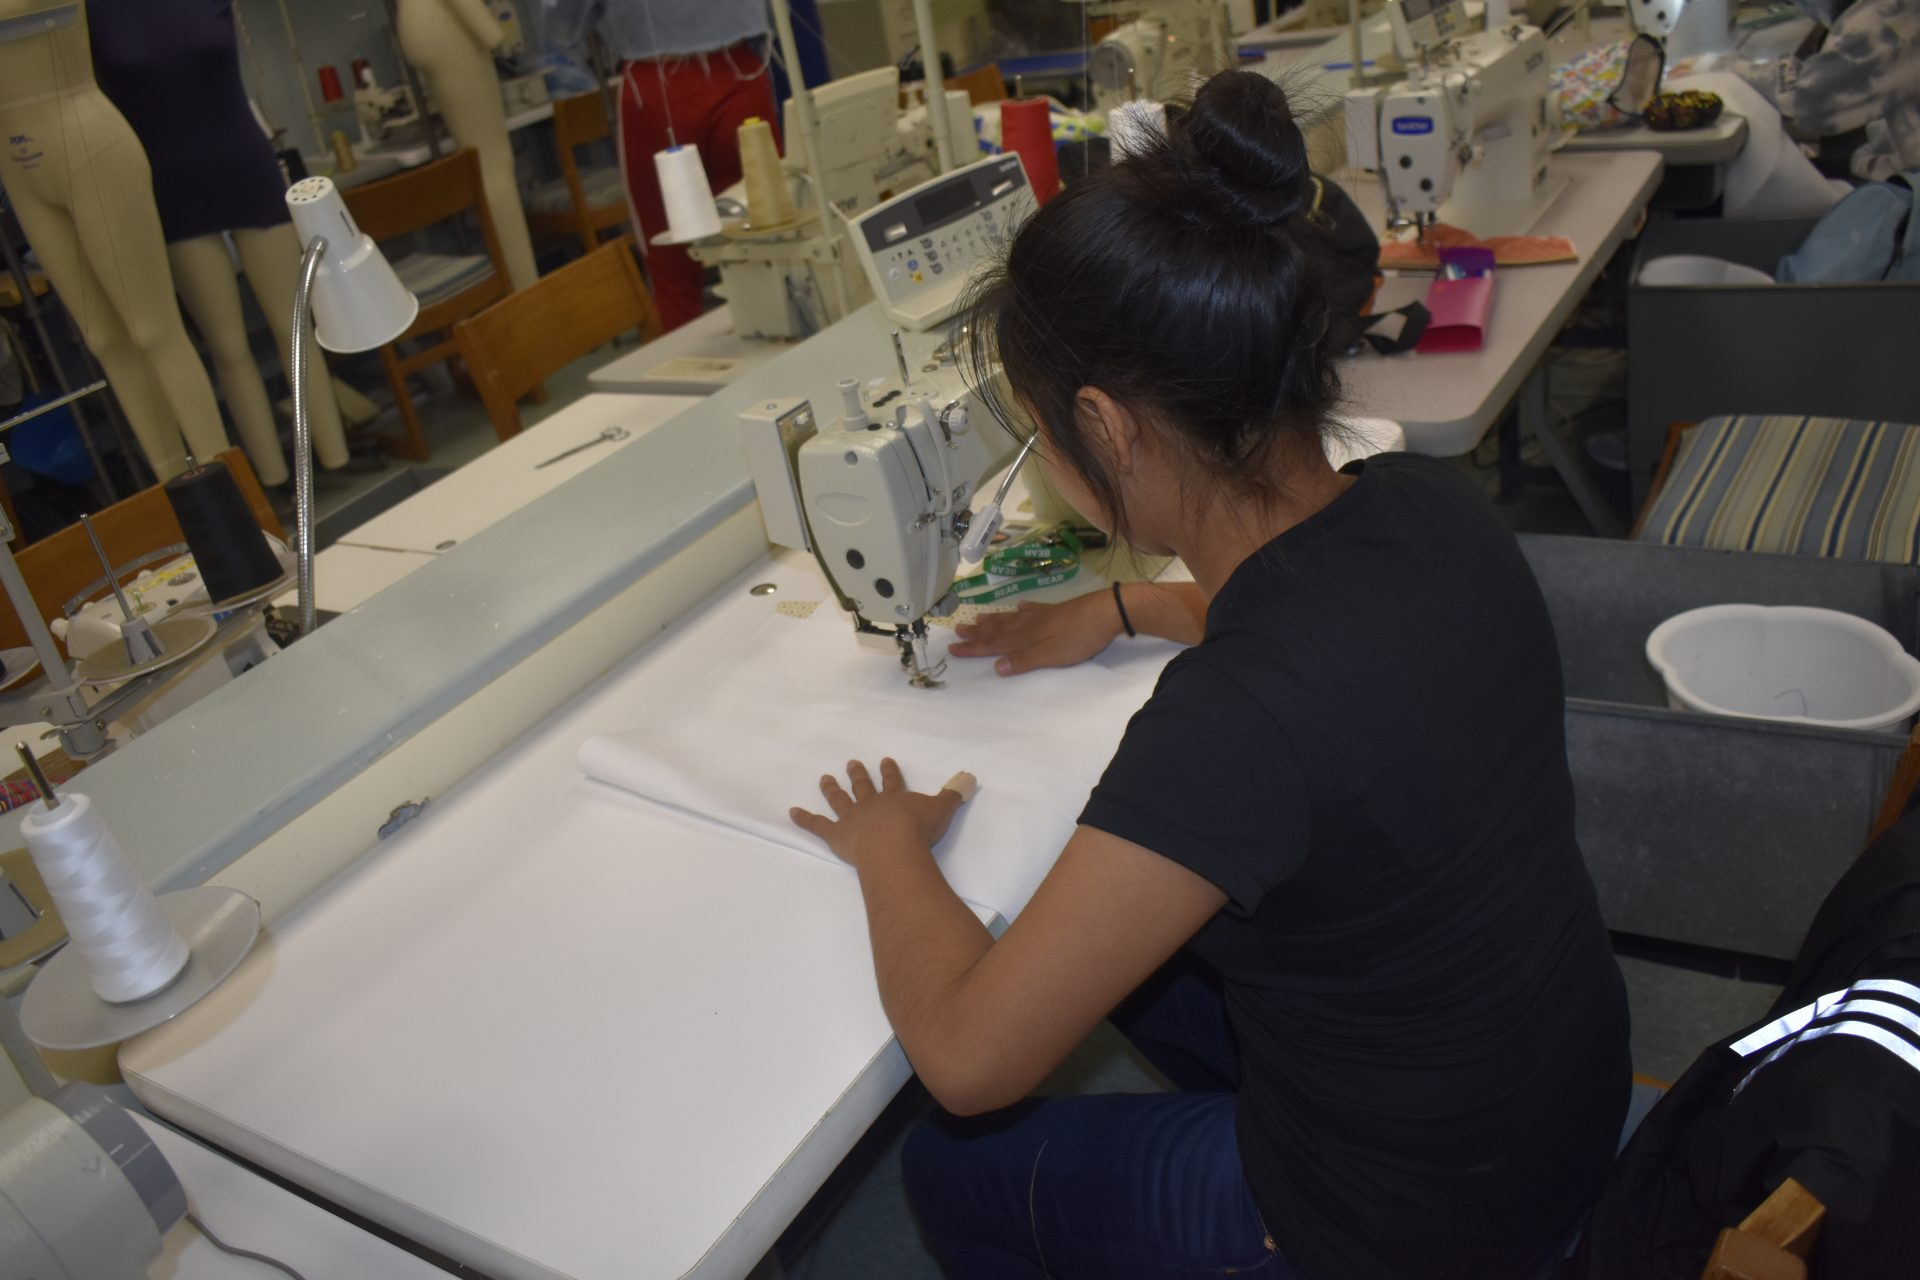 FD student working on fabric